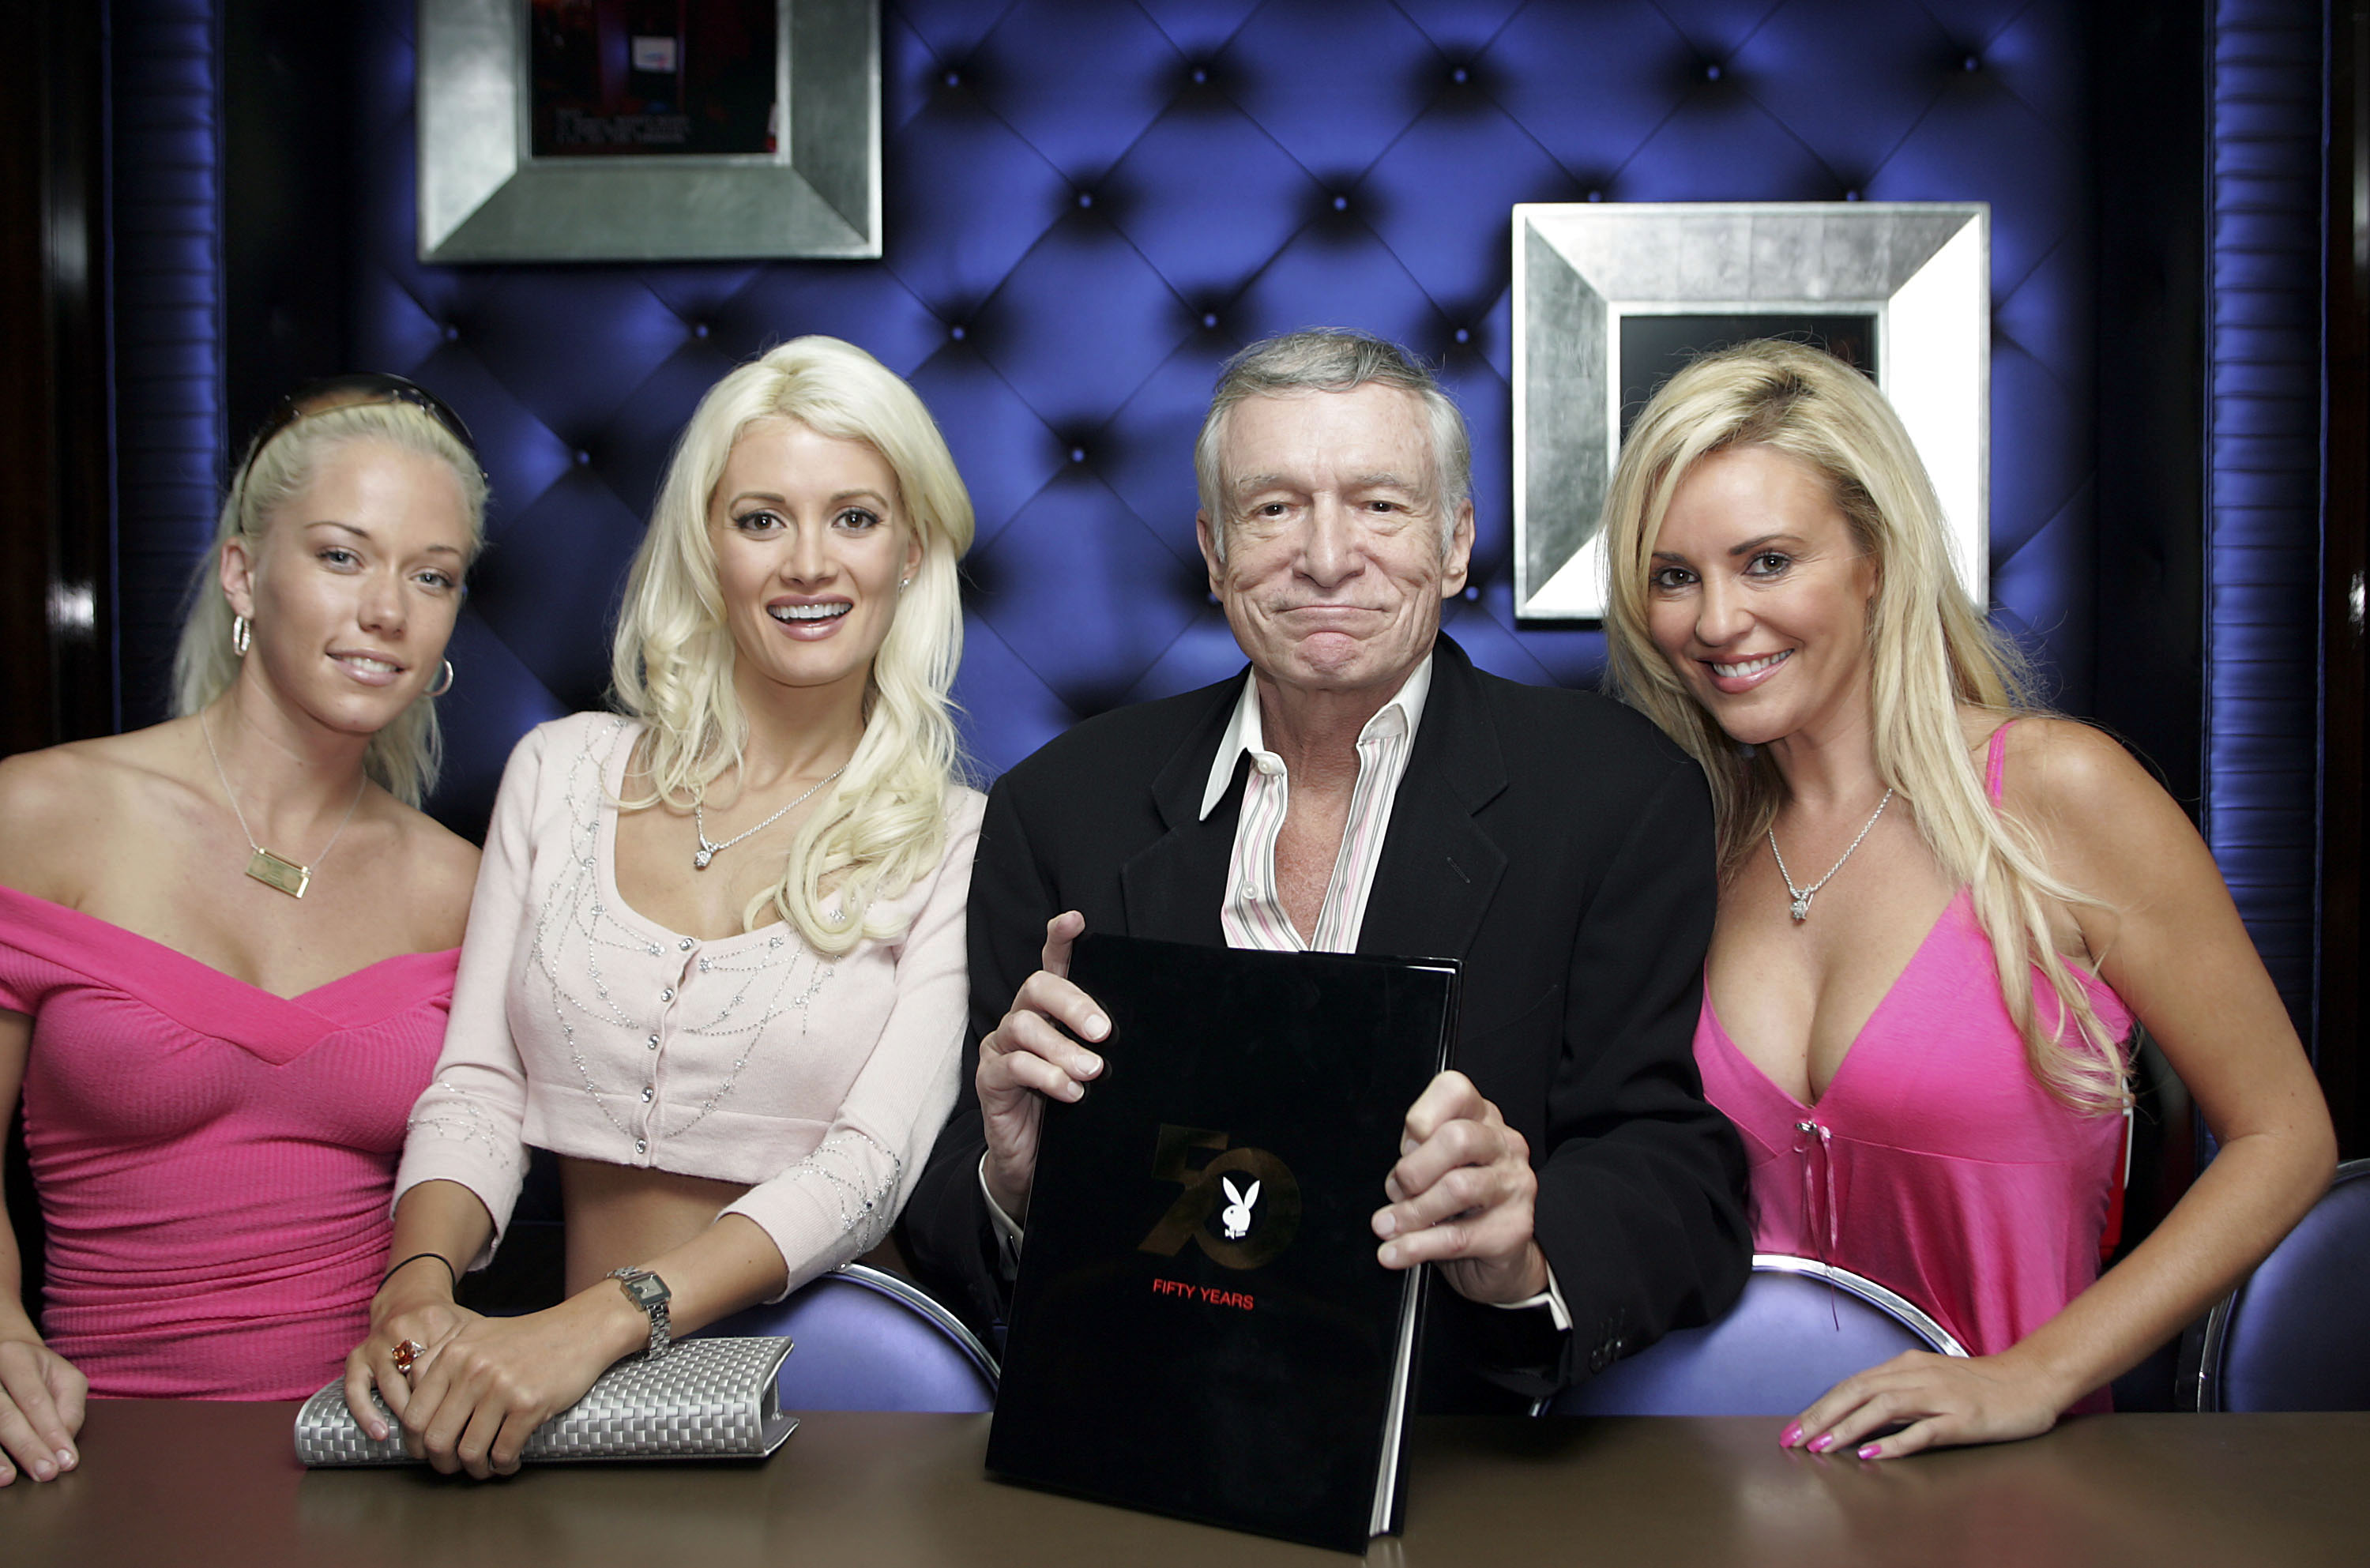 The Playboy Mansion Facts